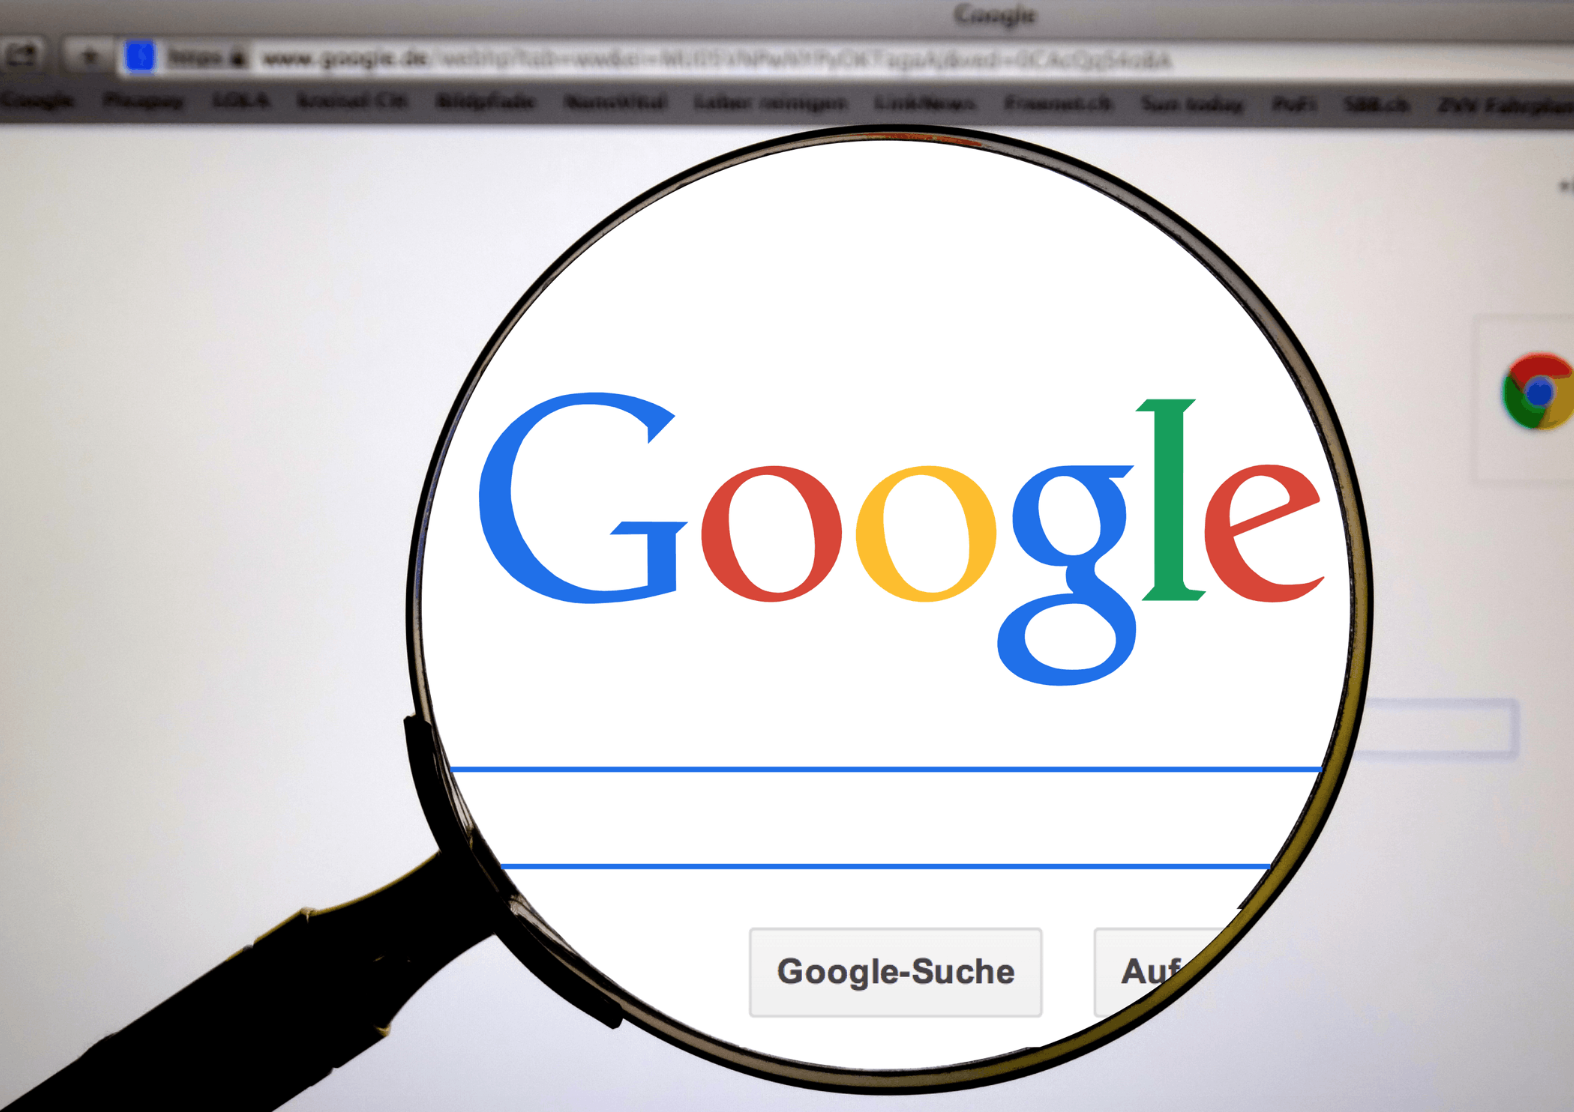 Google Discussed Burying Conservative News in Searches - Citizens